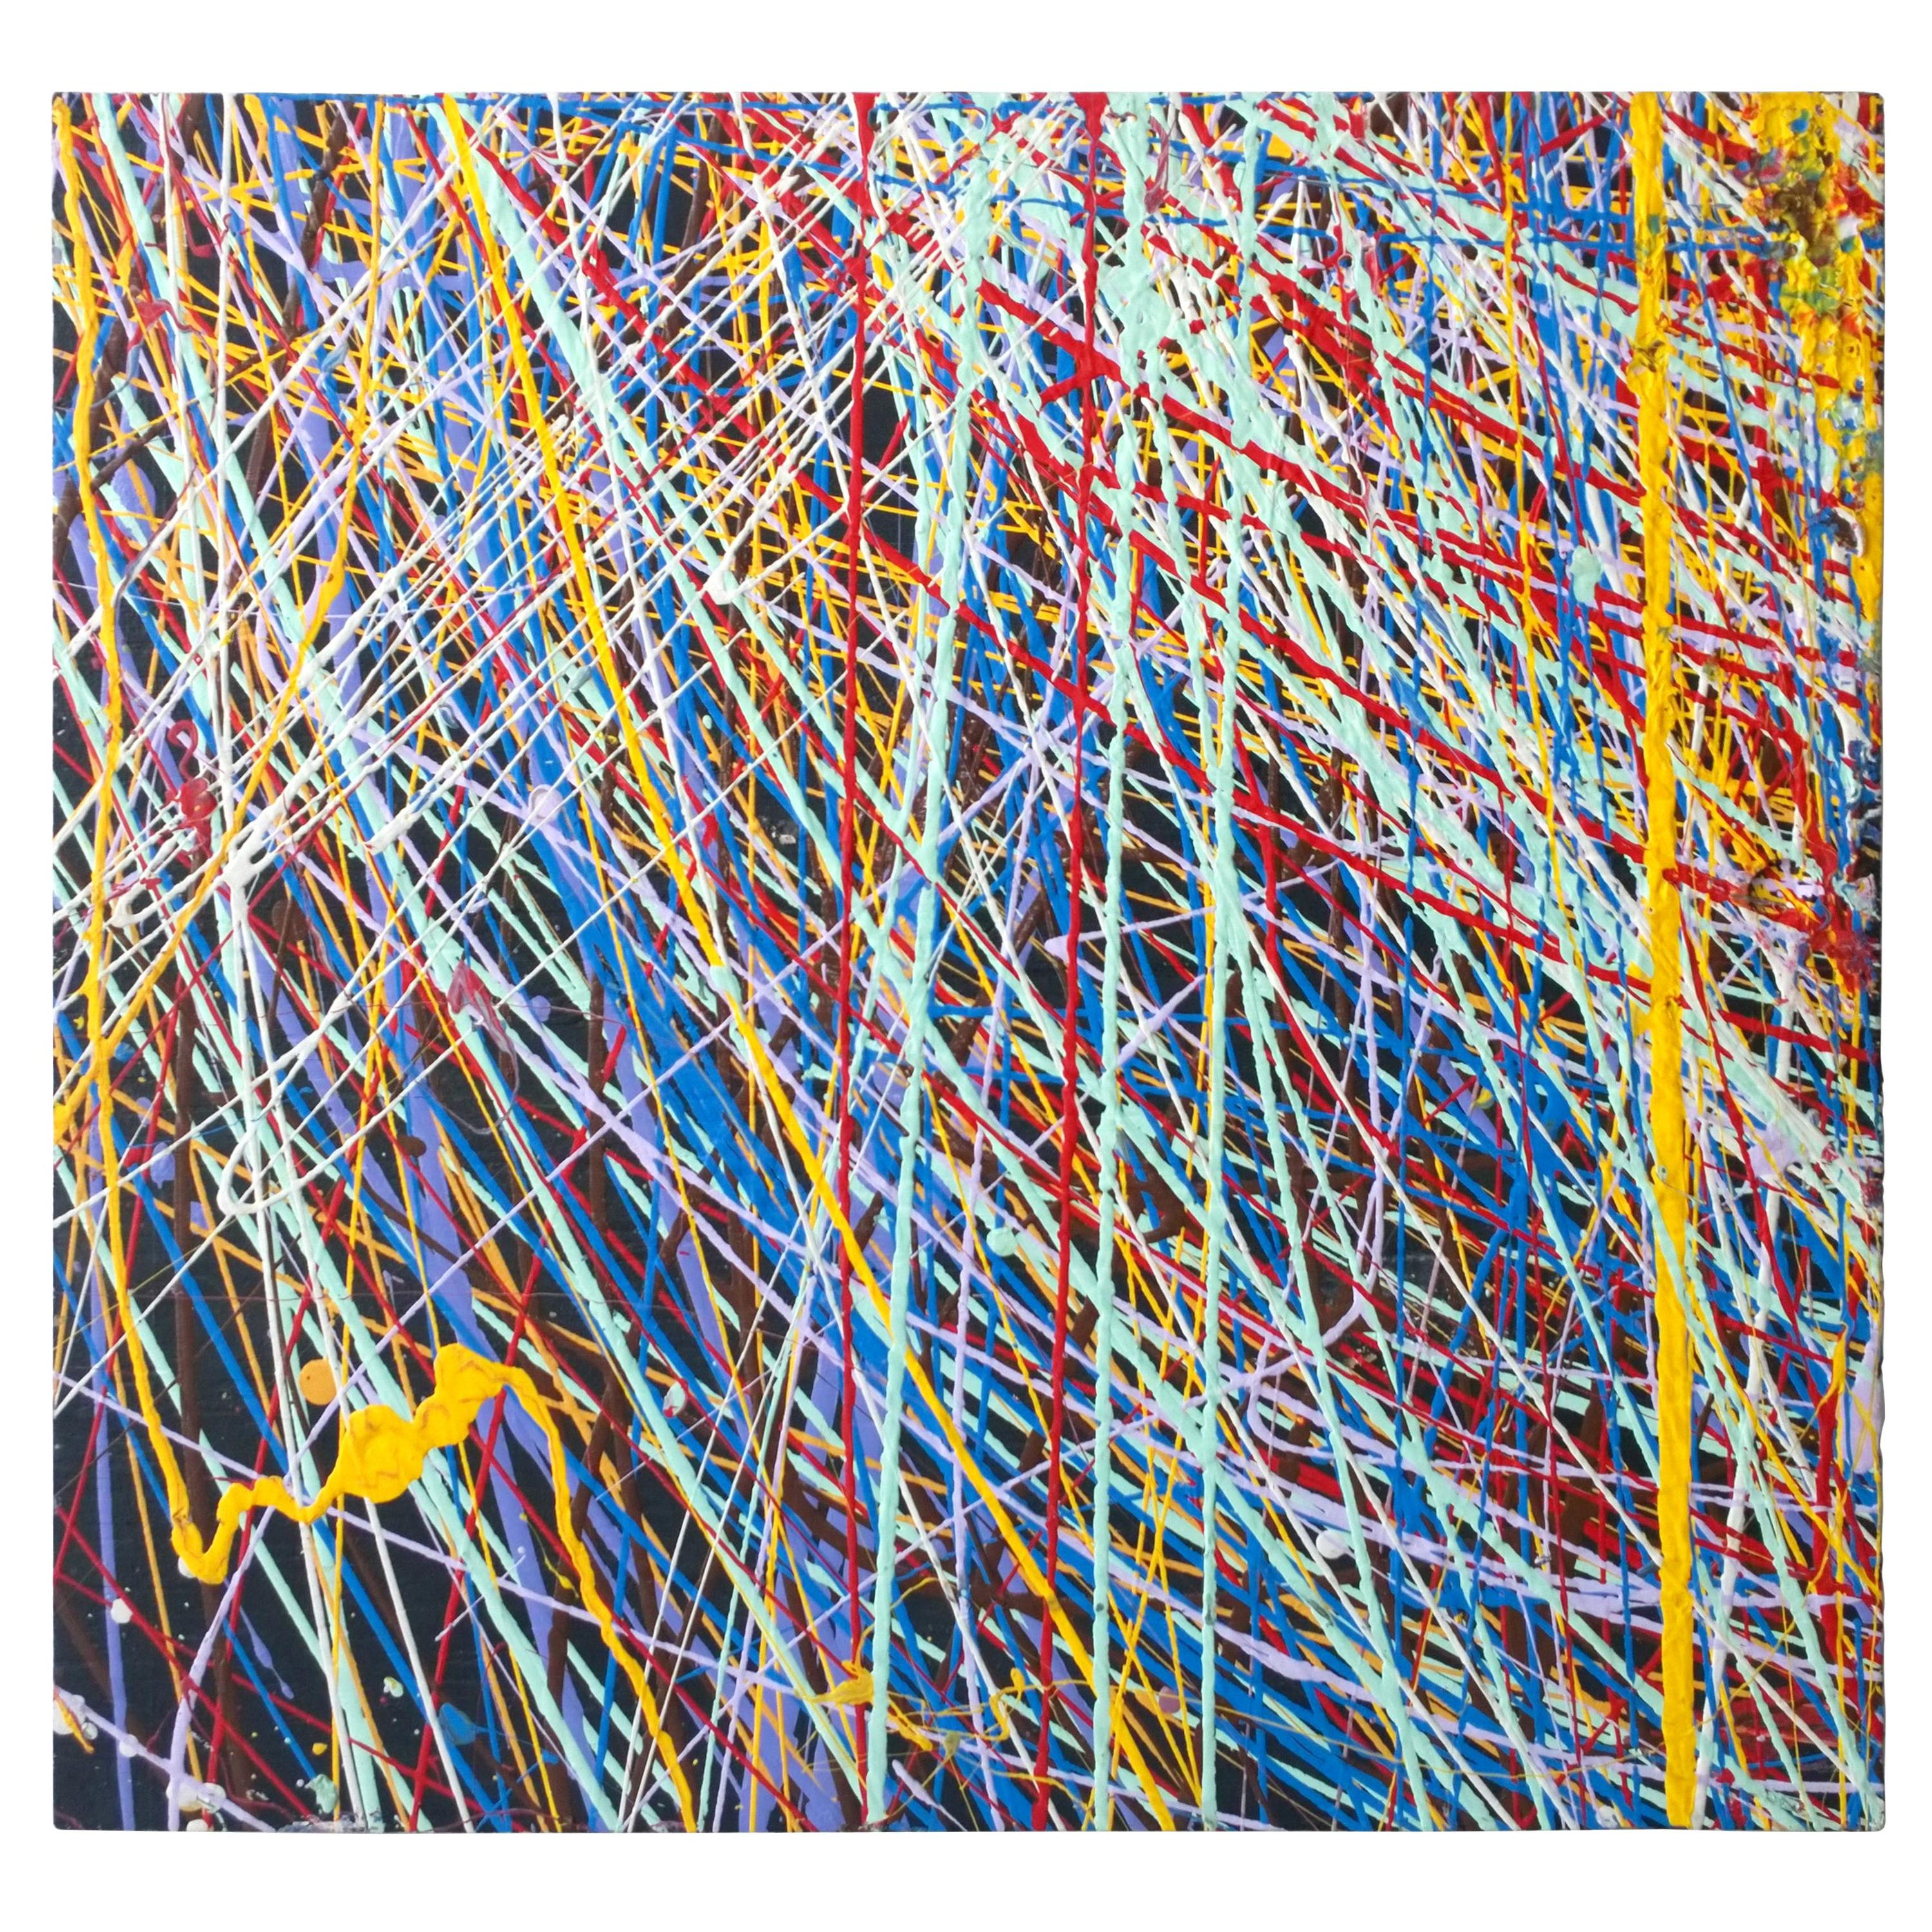 Pollock Style Yellow, Red, Blue & Black Splatter Abstract Oil Painting on Wood